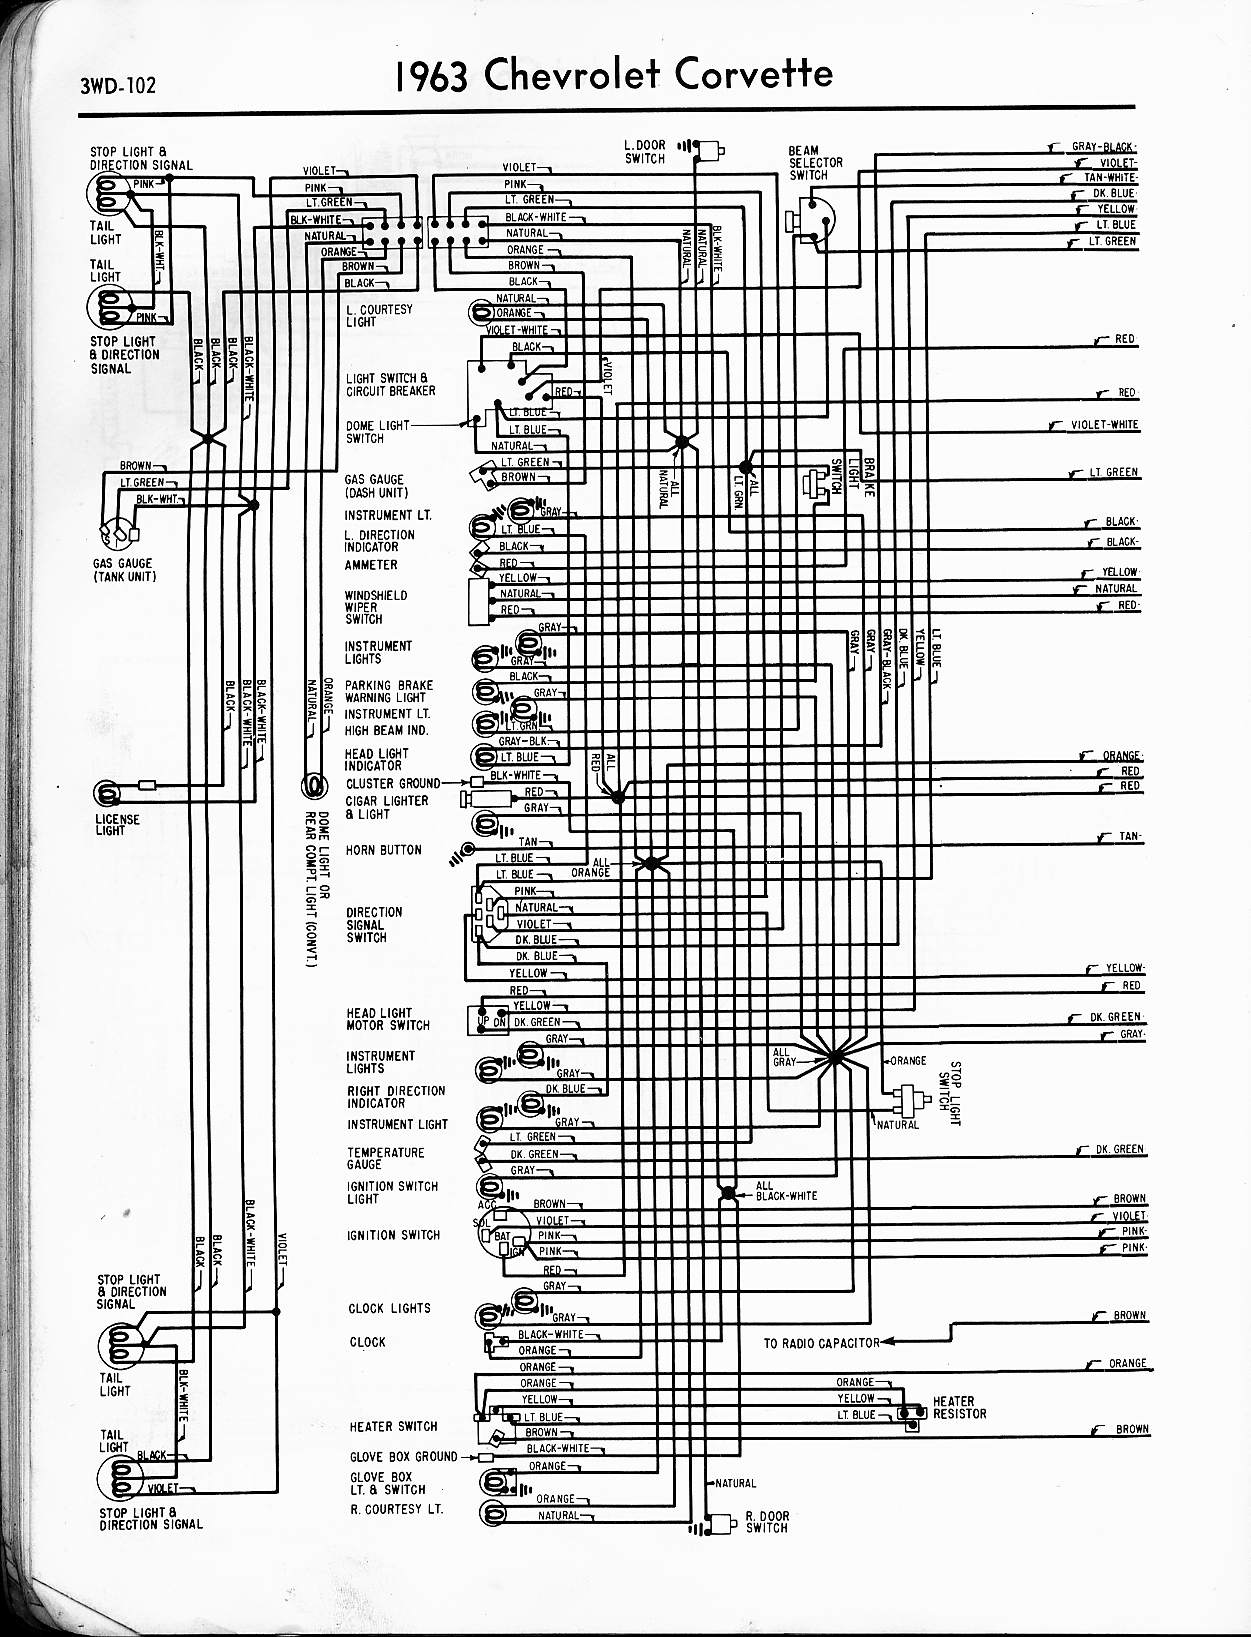 1963 Corvette Wiring Diagram - Wiring Diagram •